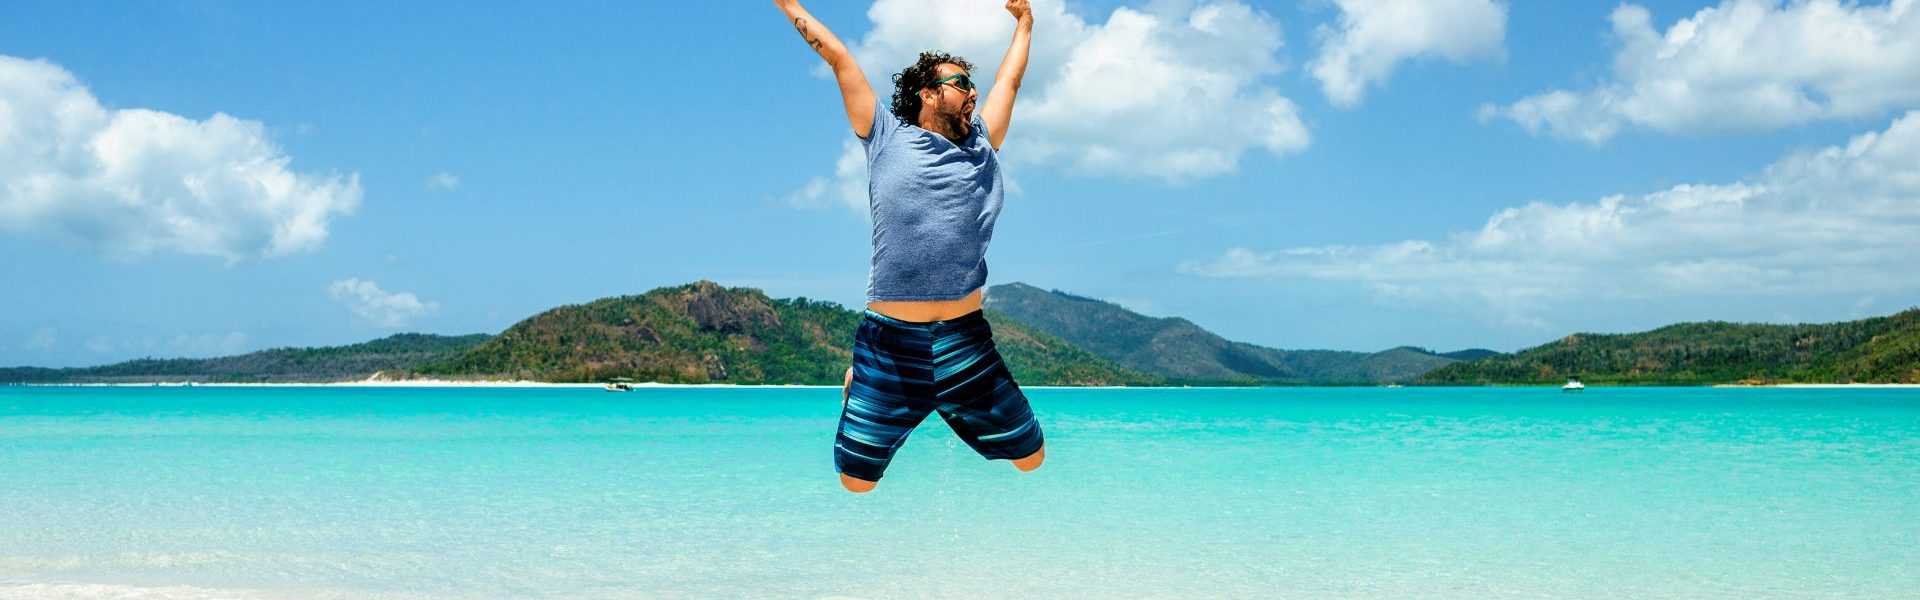 Australia, Queensland, Whitsunday Island, carefree man jumping at Whitehaven Beach